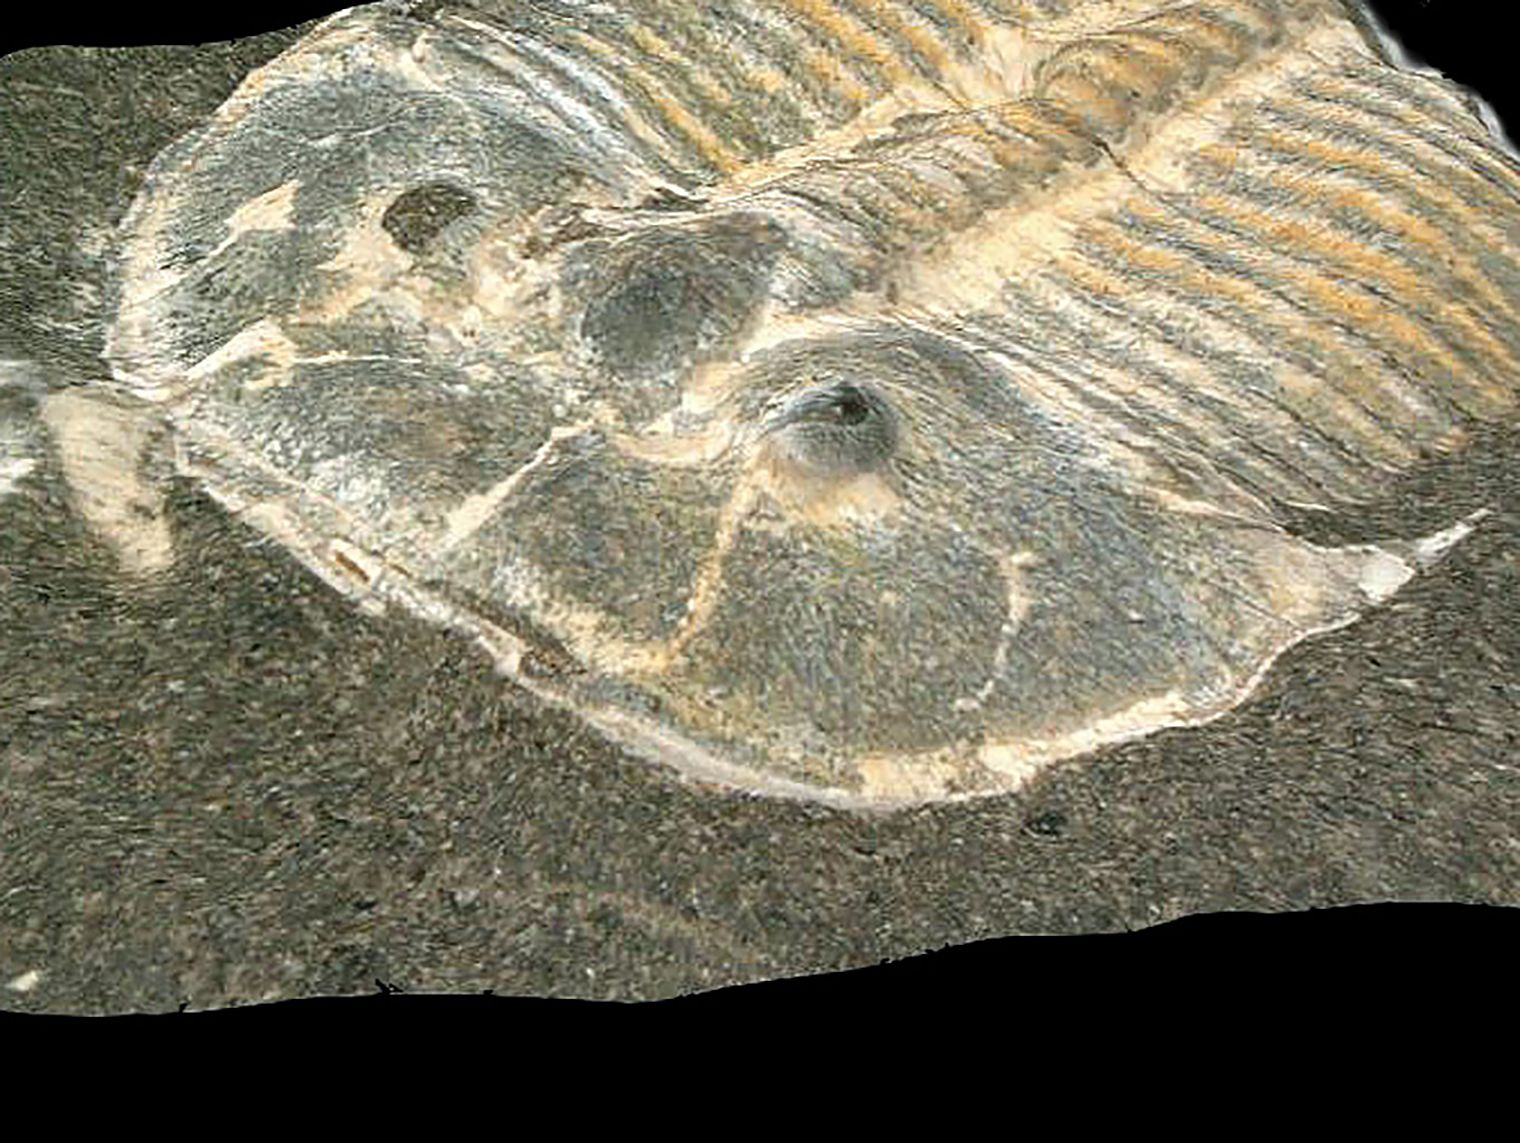 SCIENCE-NATURE-FOSSIL